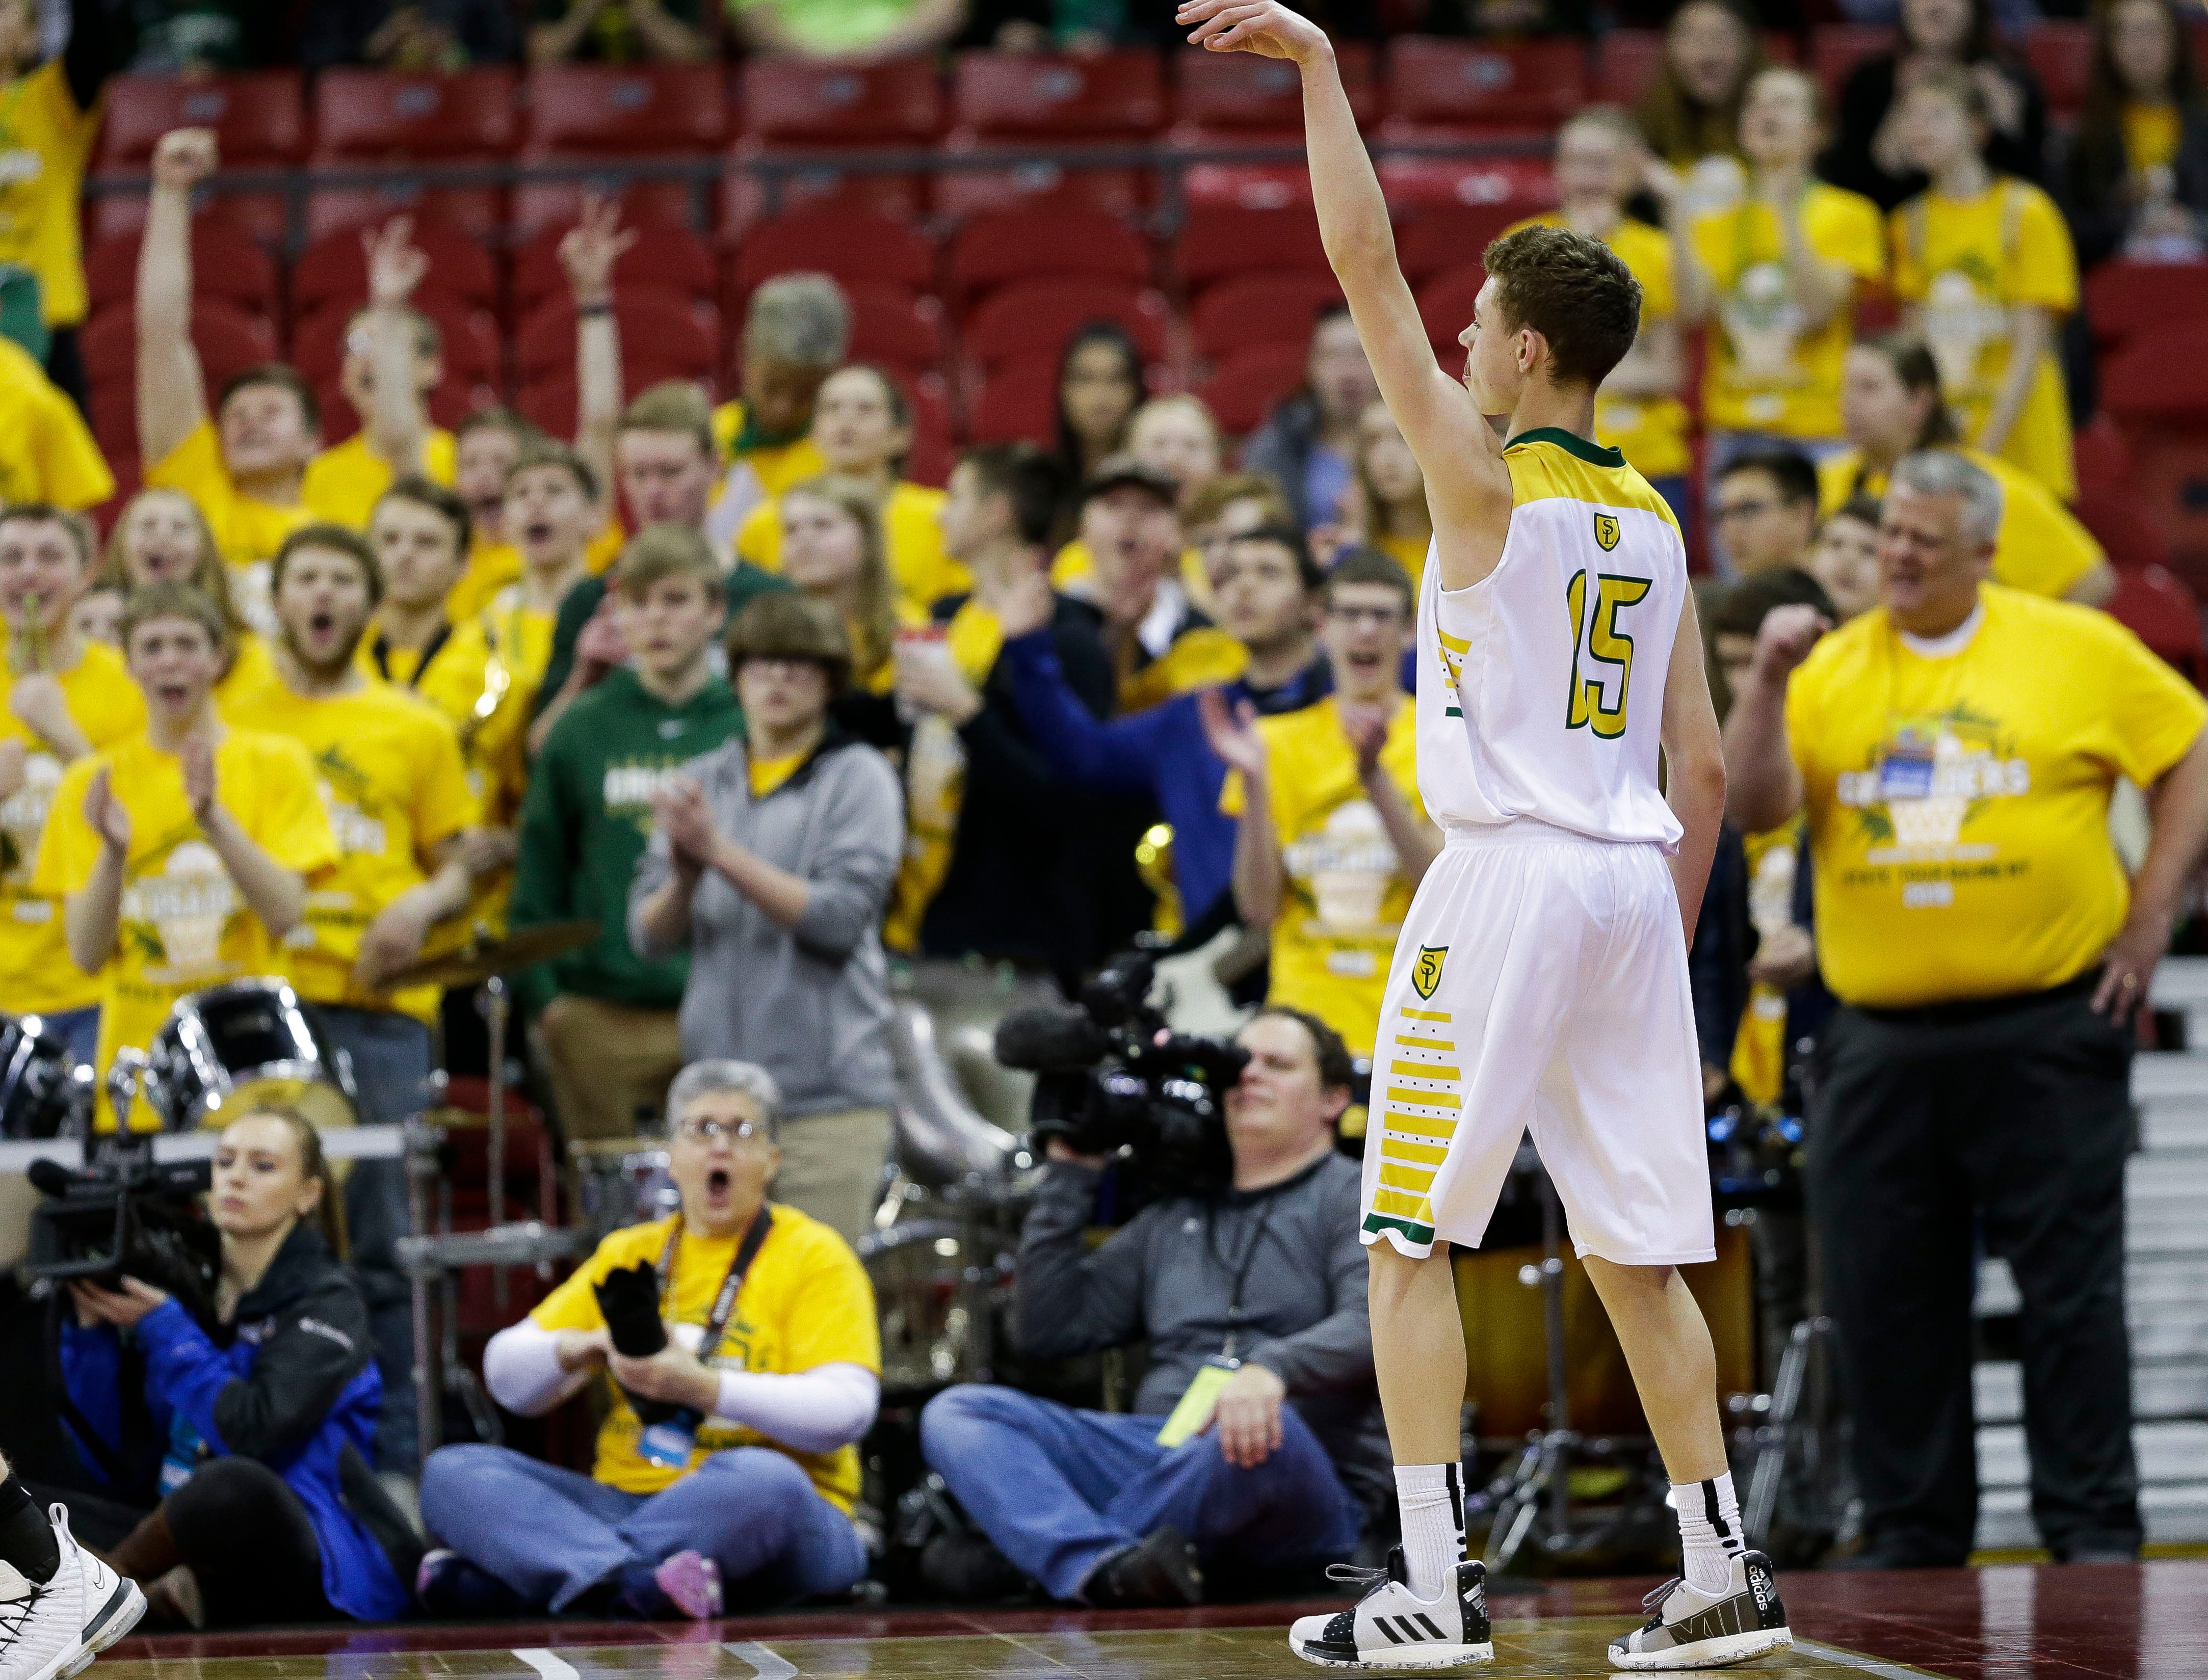 Sheboygan Lutheran High School's Delvin Barnstable (15) holds his finish after hitting a 3-pointer against McDonell Central Catholic High School in a Division 5 boys basketball state semifinal on Friday, March 15, 2019, at the Kohl Center in Madison, Wis.